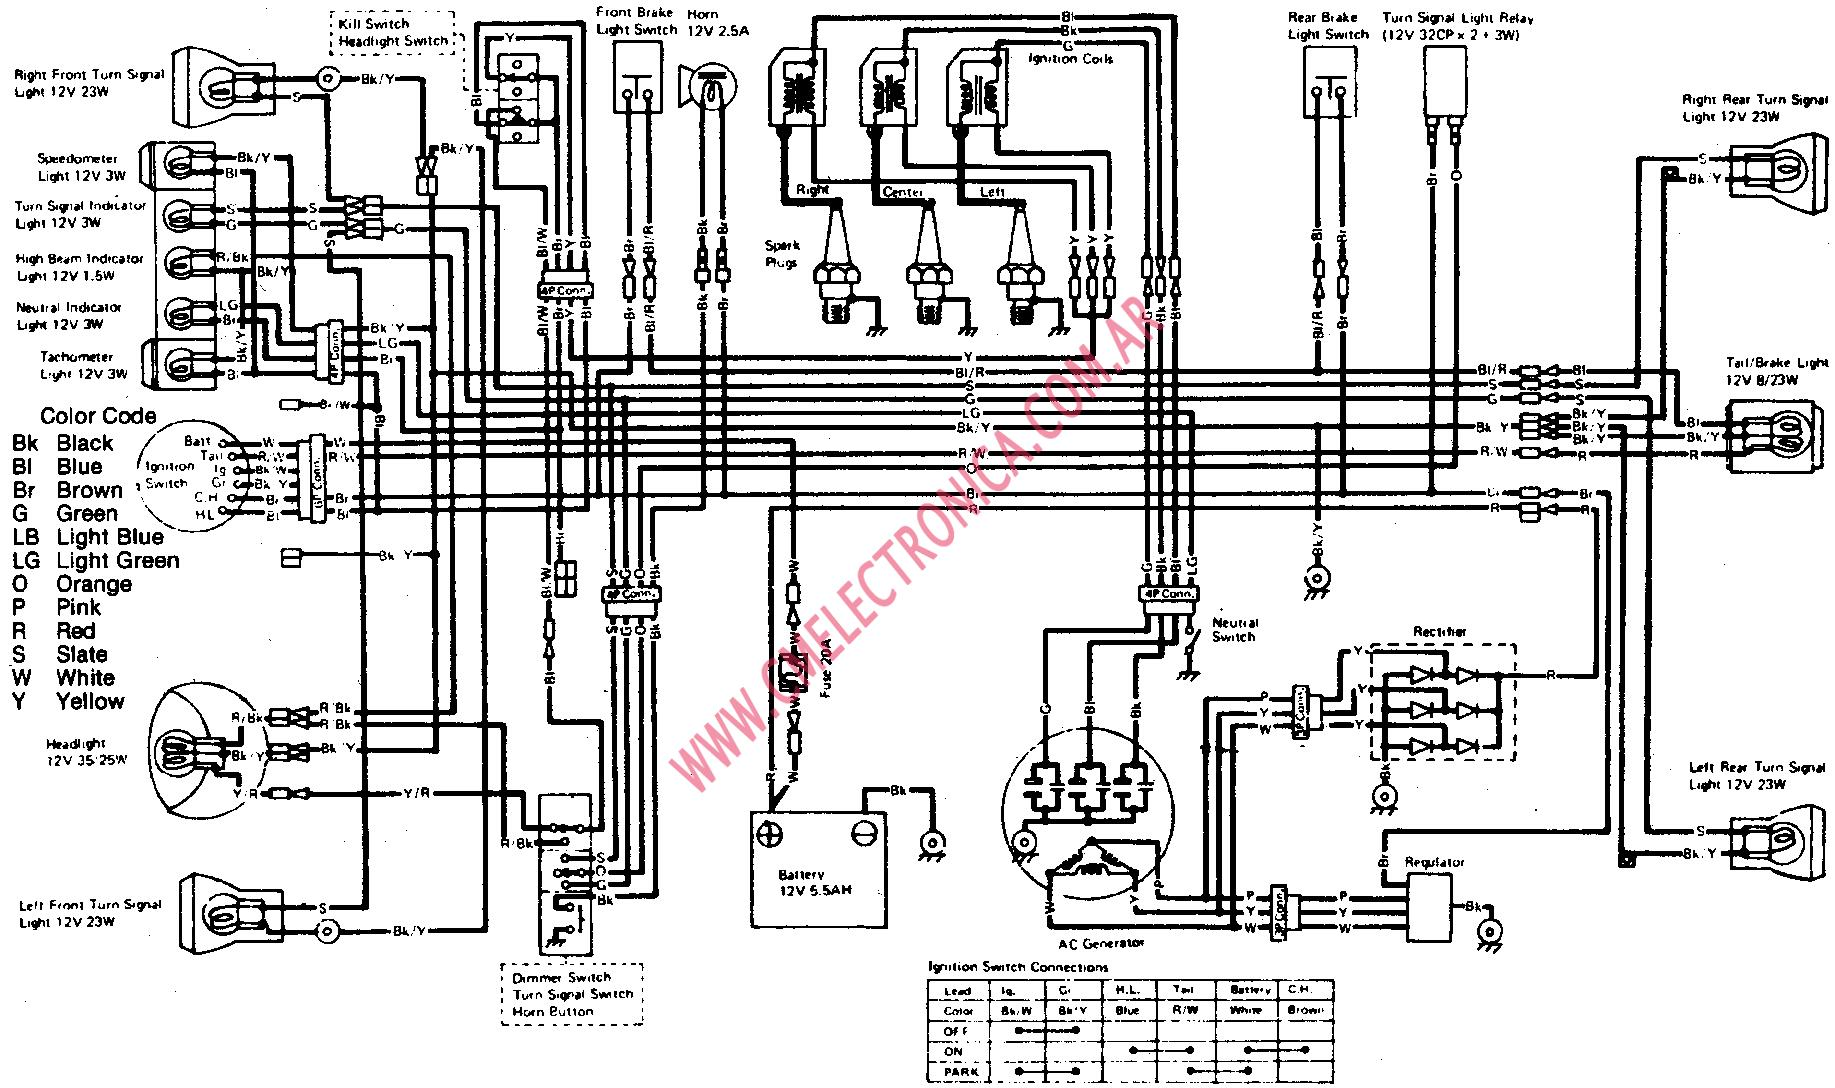 Suzuki Quad Wiring Diagram. Suzuki. Wiring Diagrams Instructions